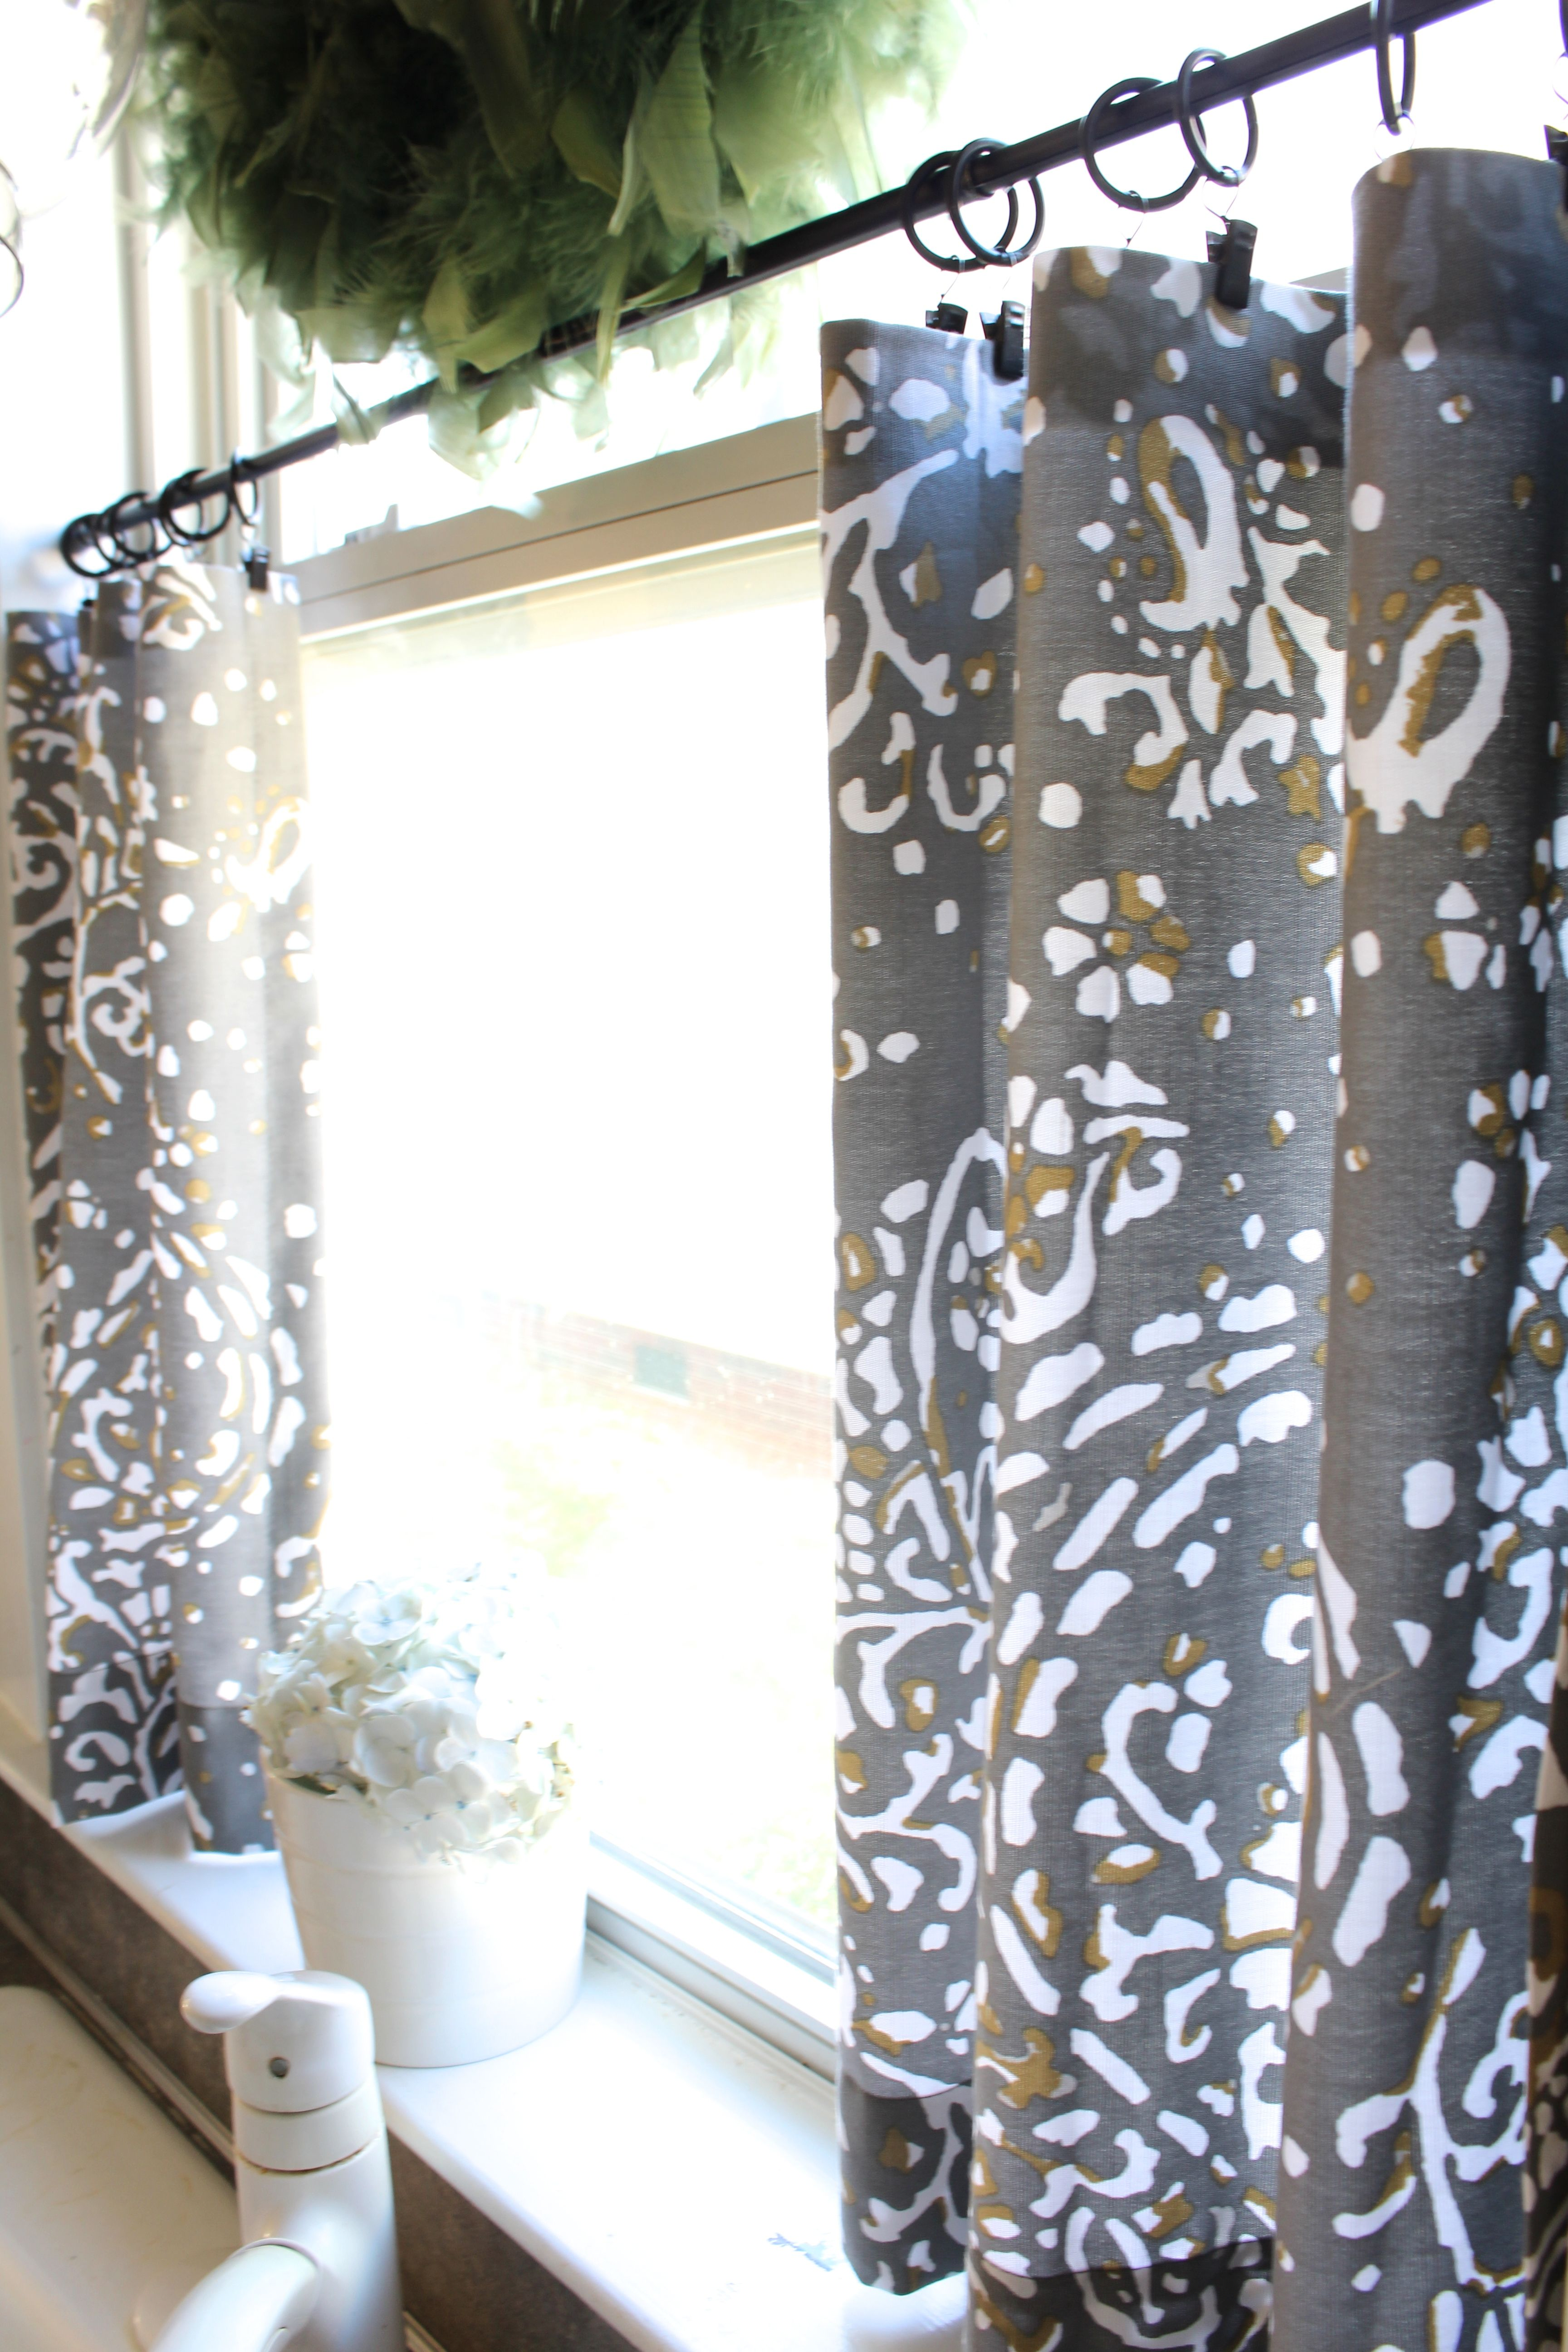 For The Kitchen 15 Wonderful Diy Ideas To Upgrade The Kitchen 12 Cute Curtains